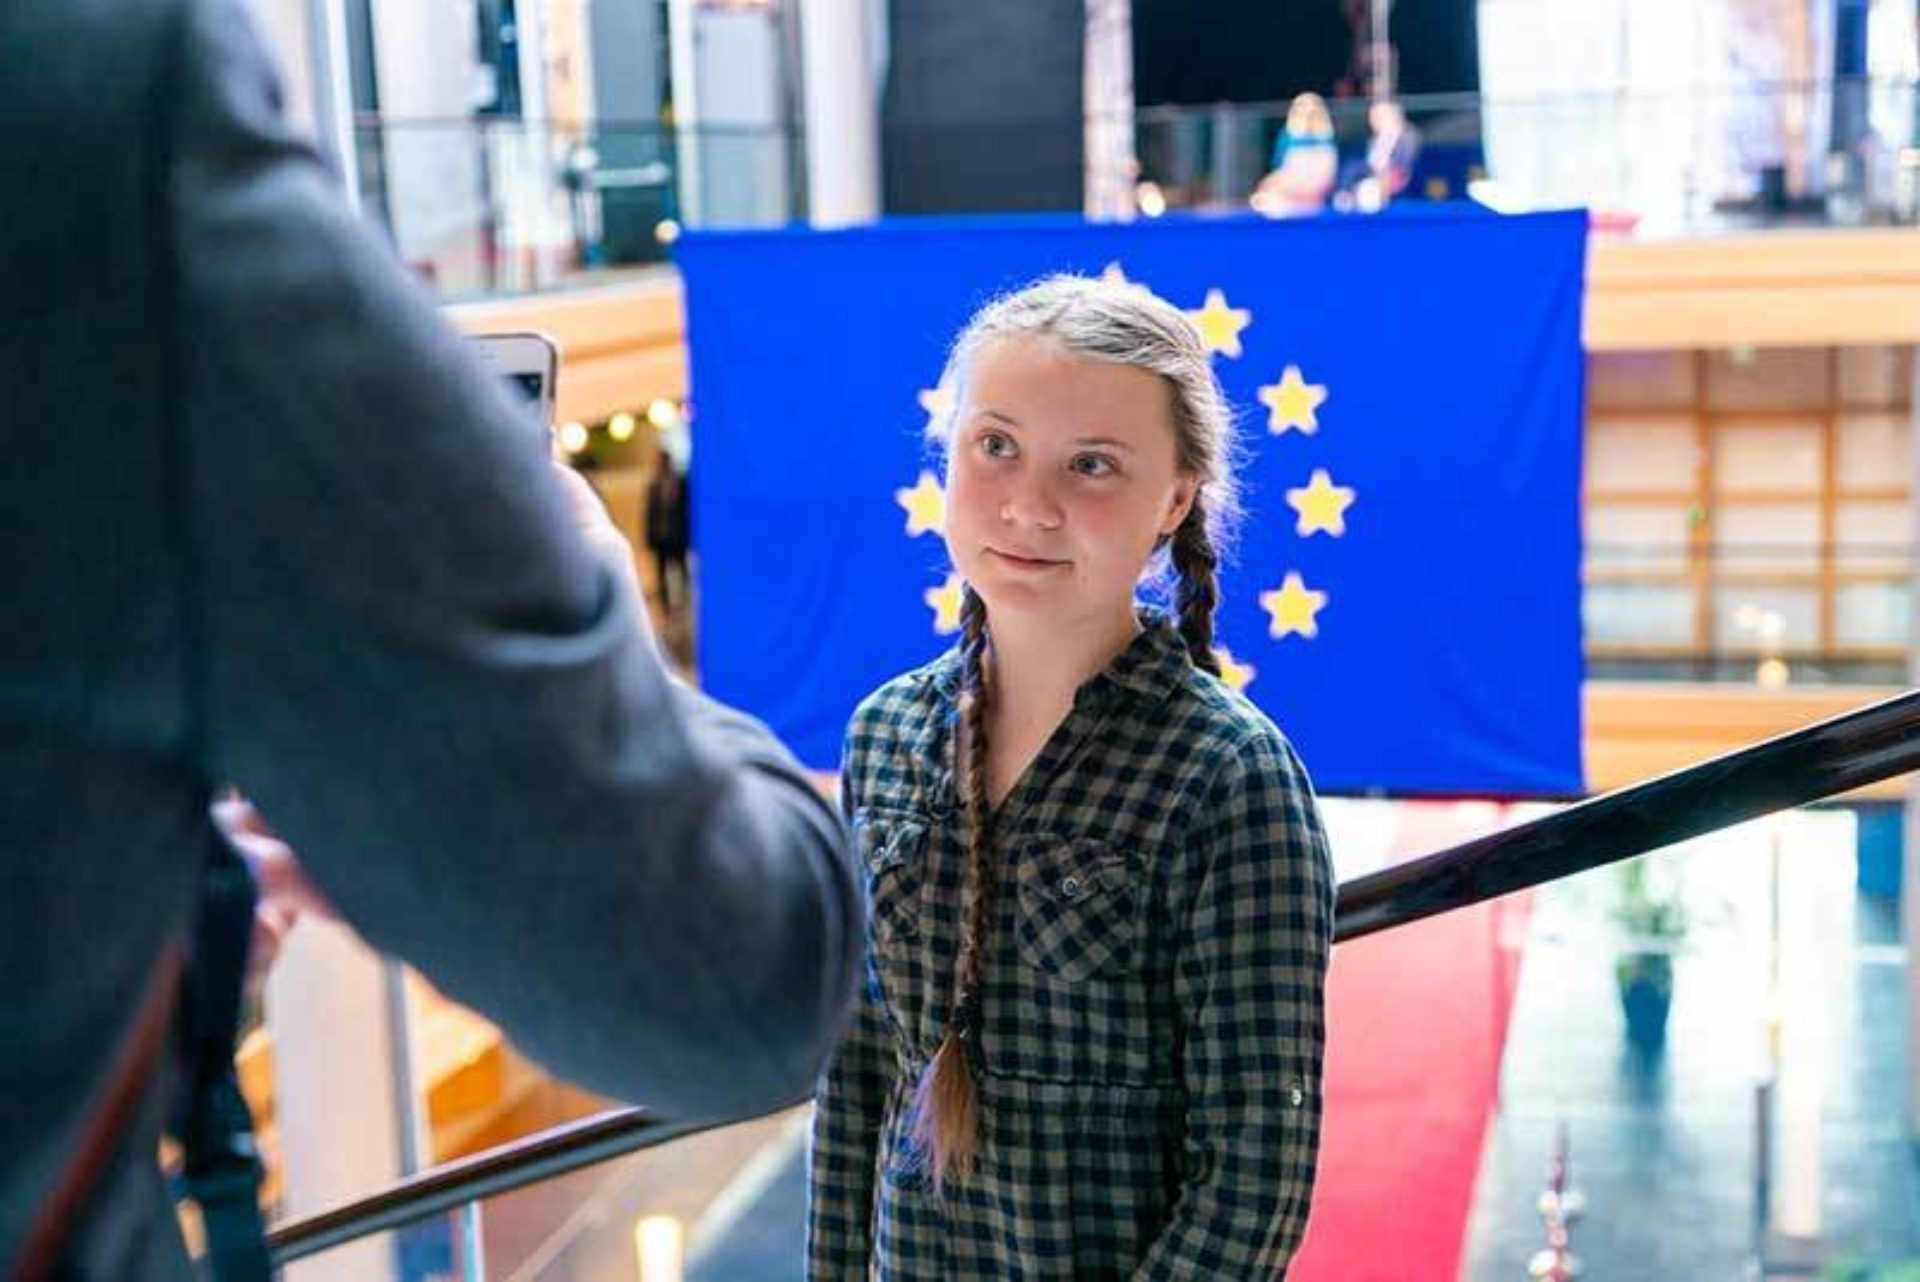 Greta Thunberg: 16 and on a mission